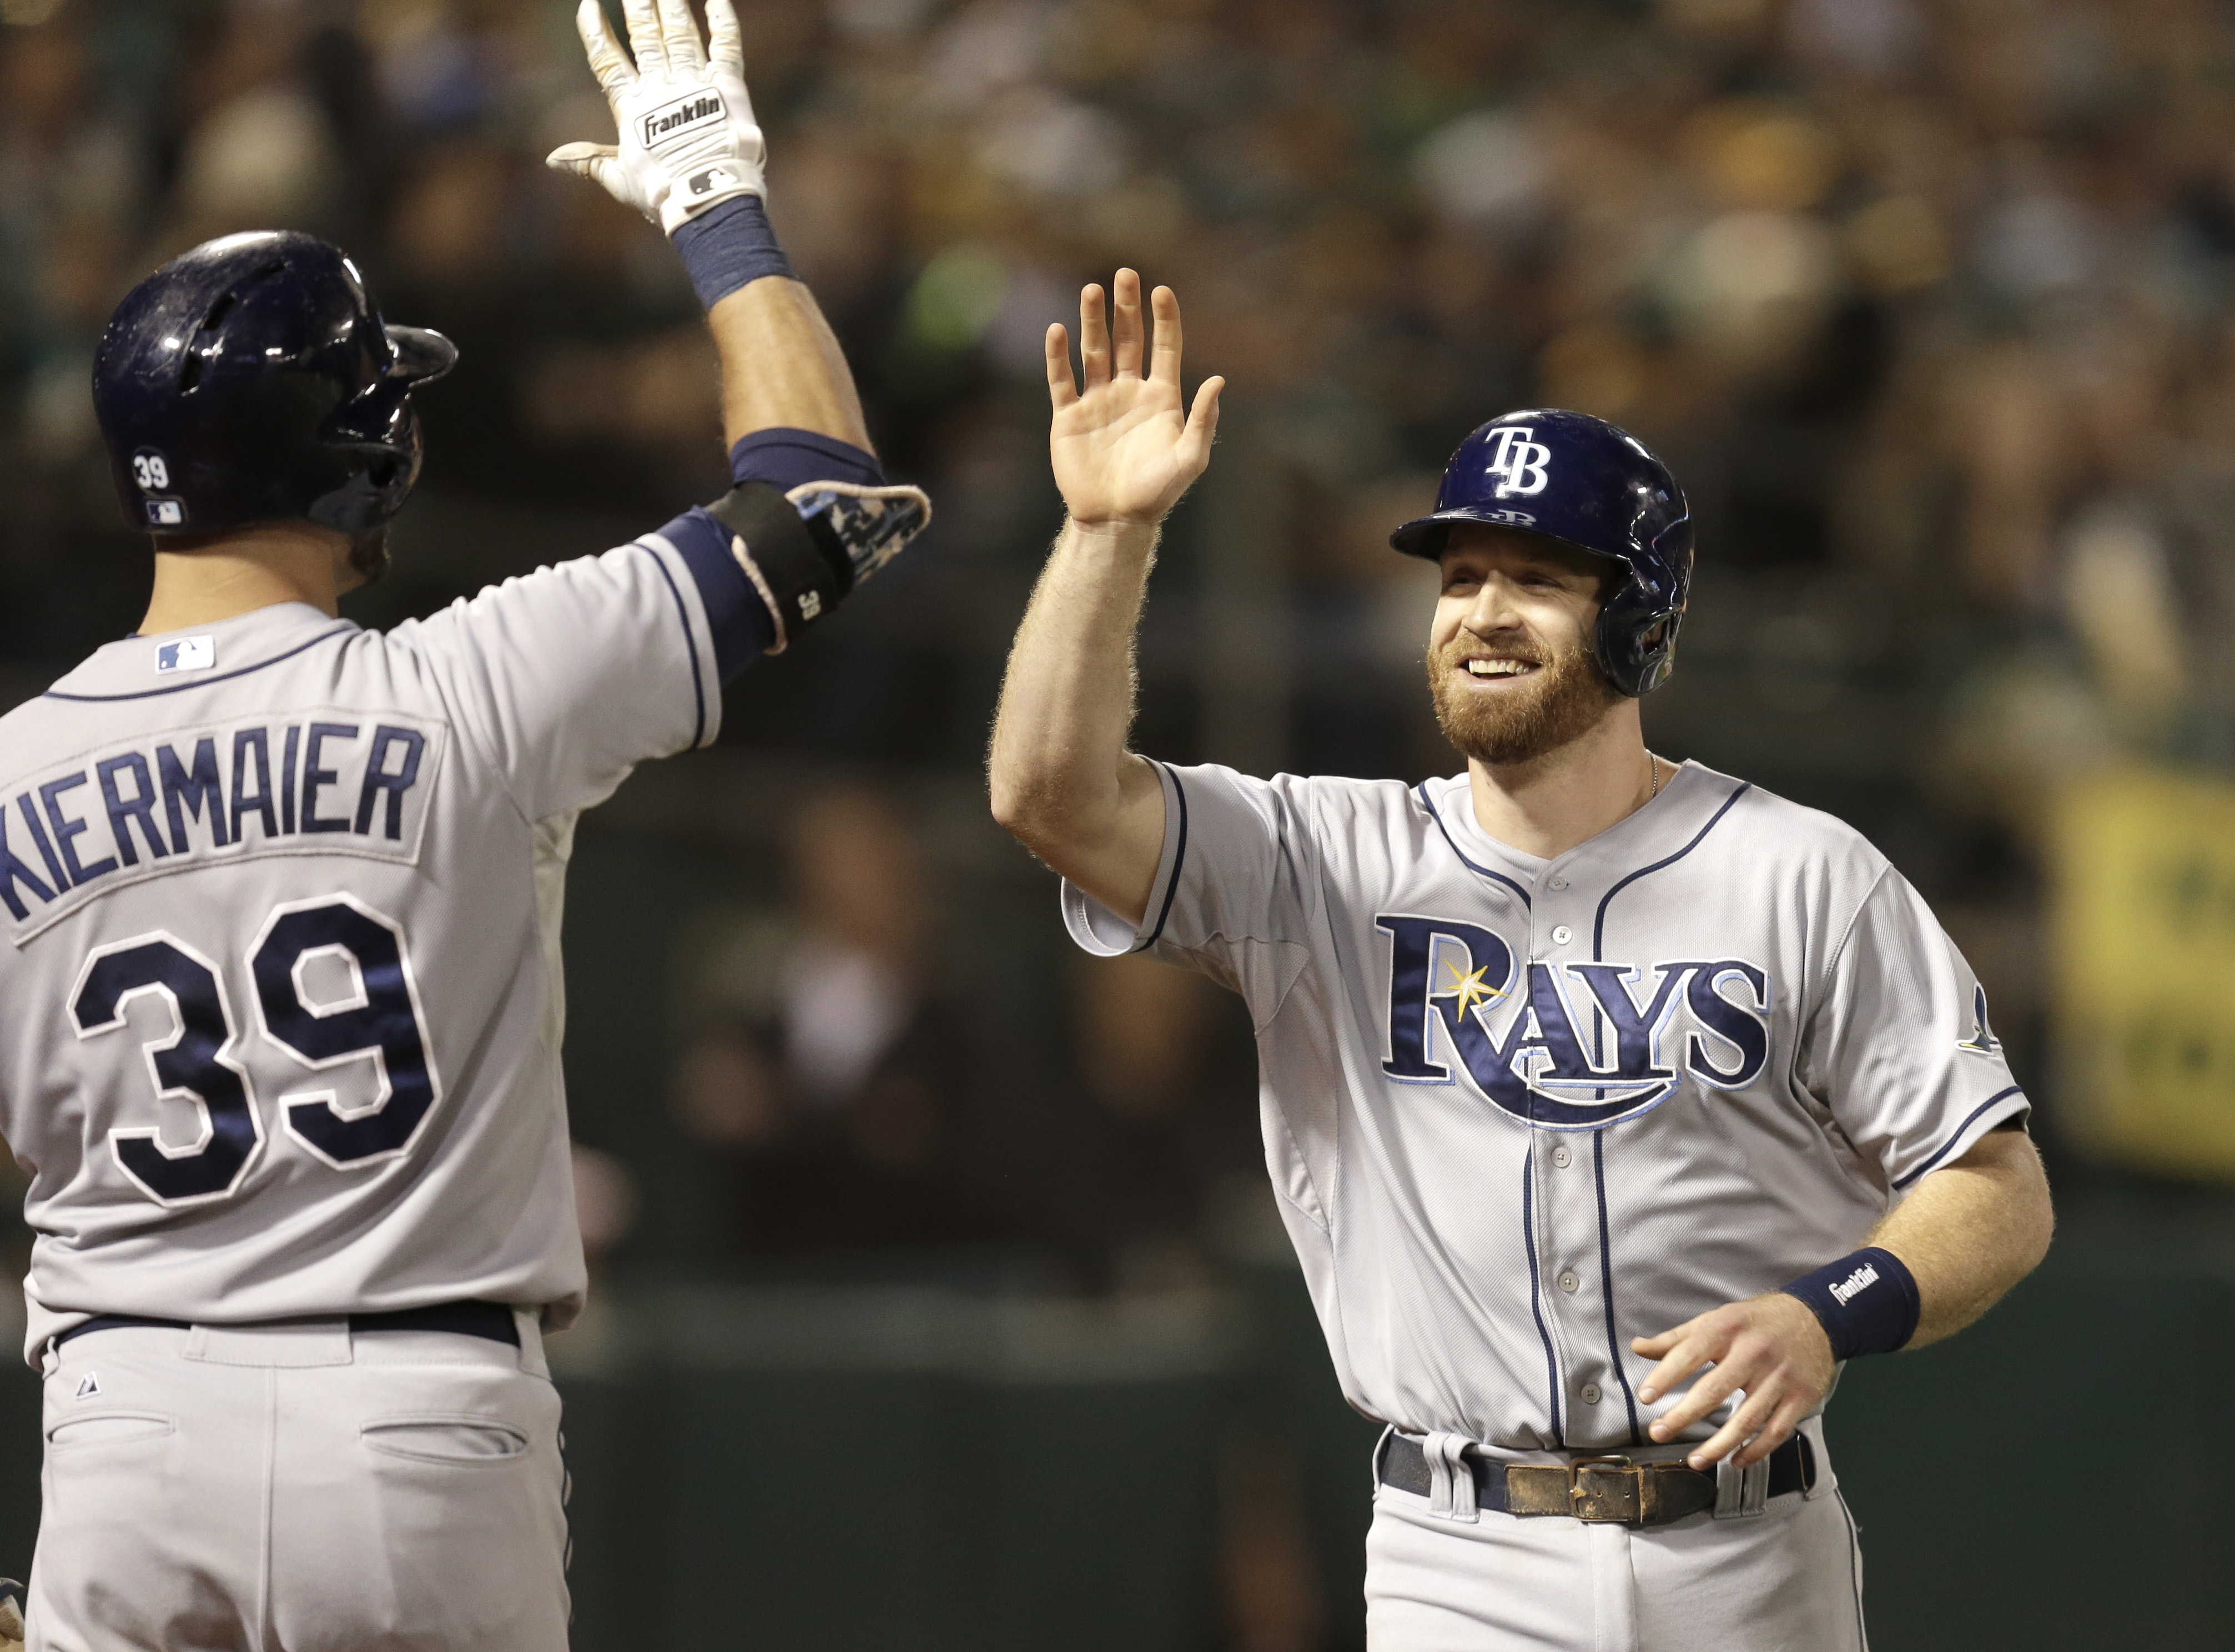 Tampa Bay Rays' Logan Forsythe, right, is congratulated by Kevin Kiermaier (39) after scoring against the Oakland Athletics in the ninth inning of a baseball game Saturday, Aug. 22, 2015, in Oakland, Calif. Forsythe scored on a double by Rays' Asdrubal Ca